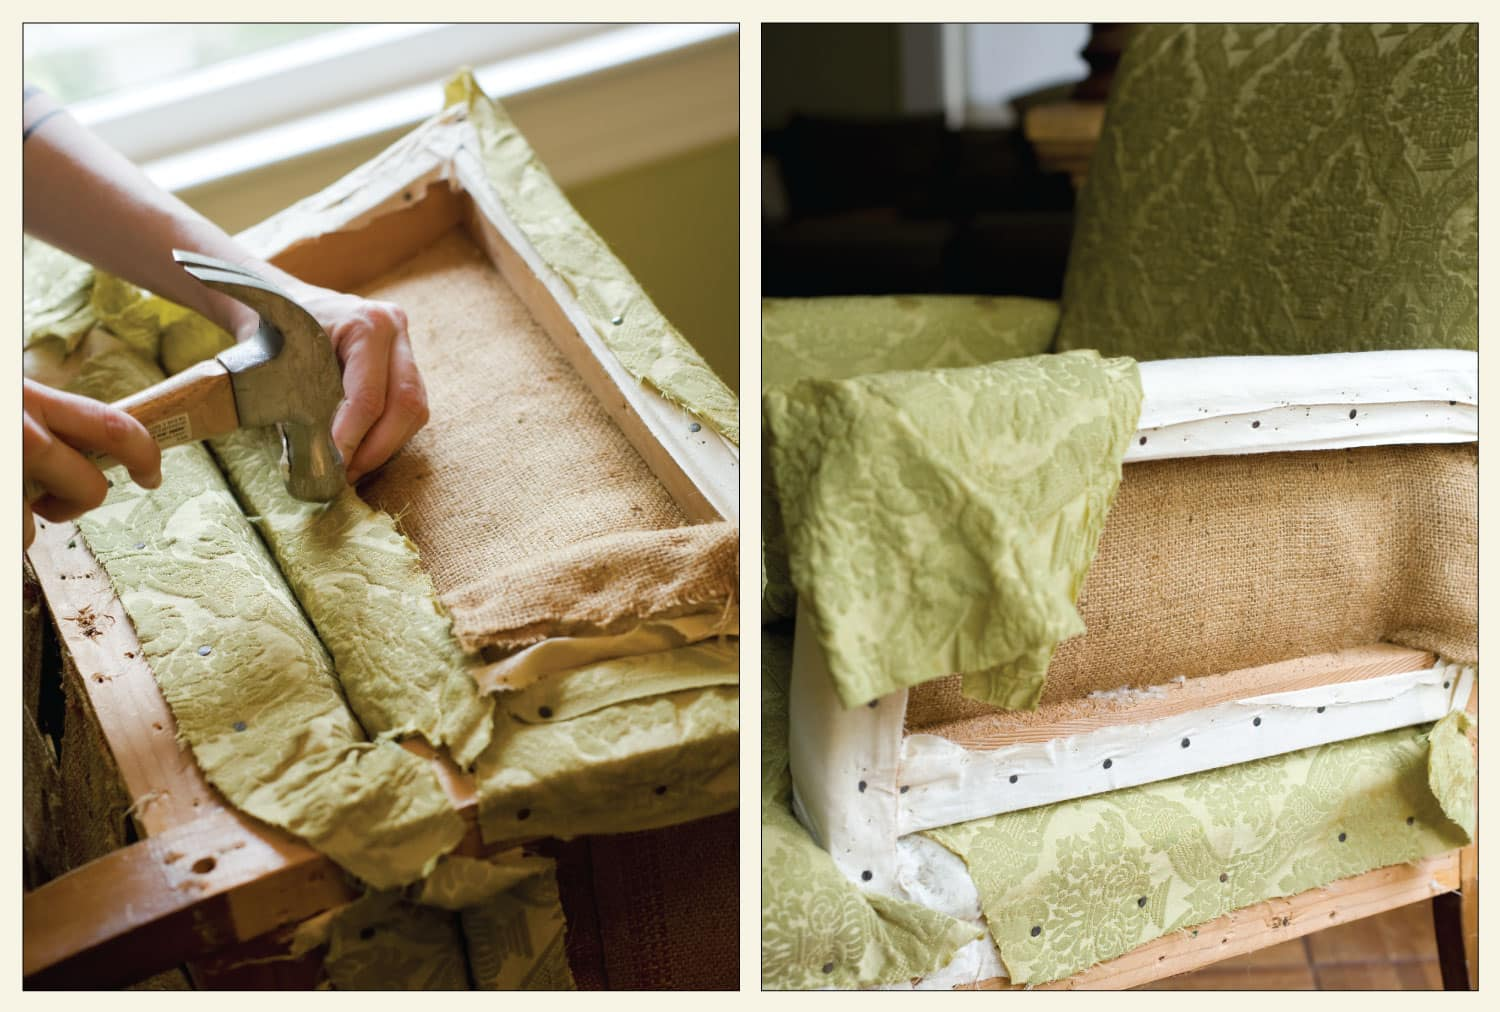 An upholsterer hammers nails into an armchair to hold the new fabric in place